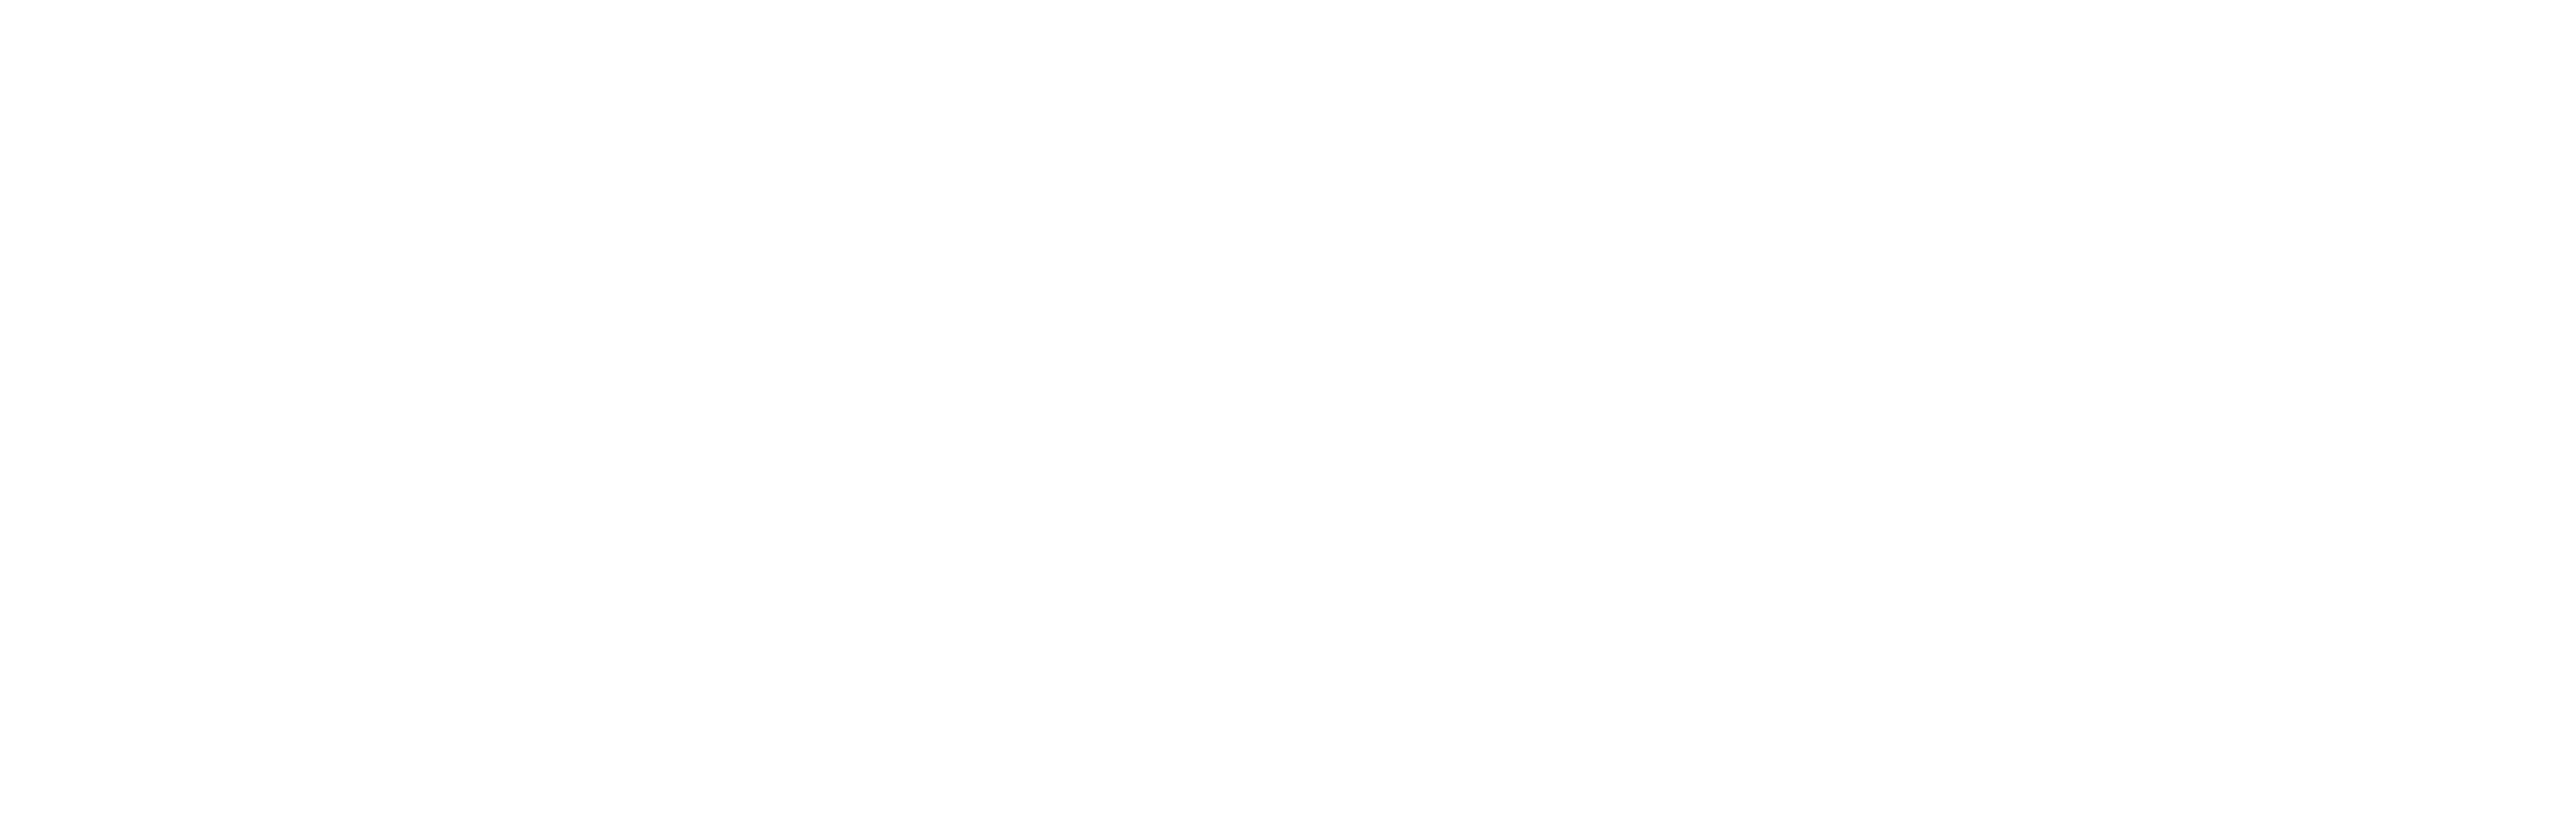 ARX-motorcycle-adventures